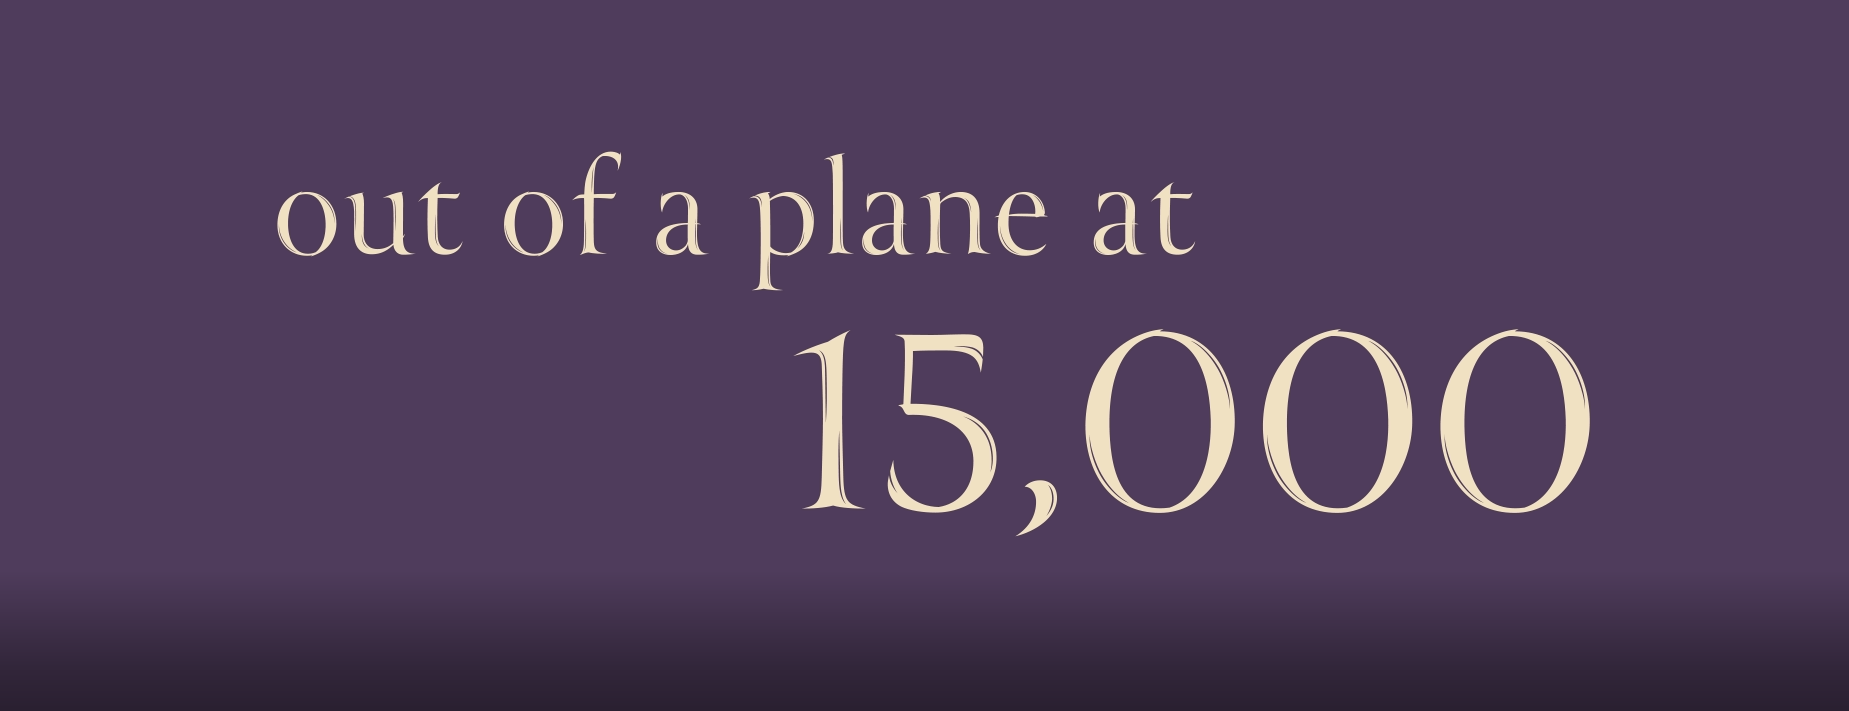 "sand colored letters on a purple background read: ""out of a plane at 15,000"" feet."